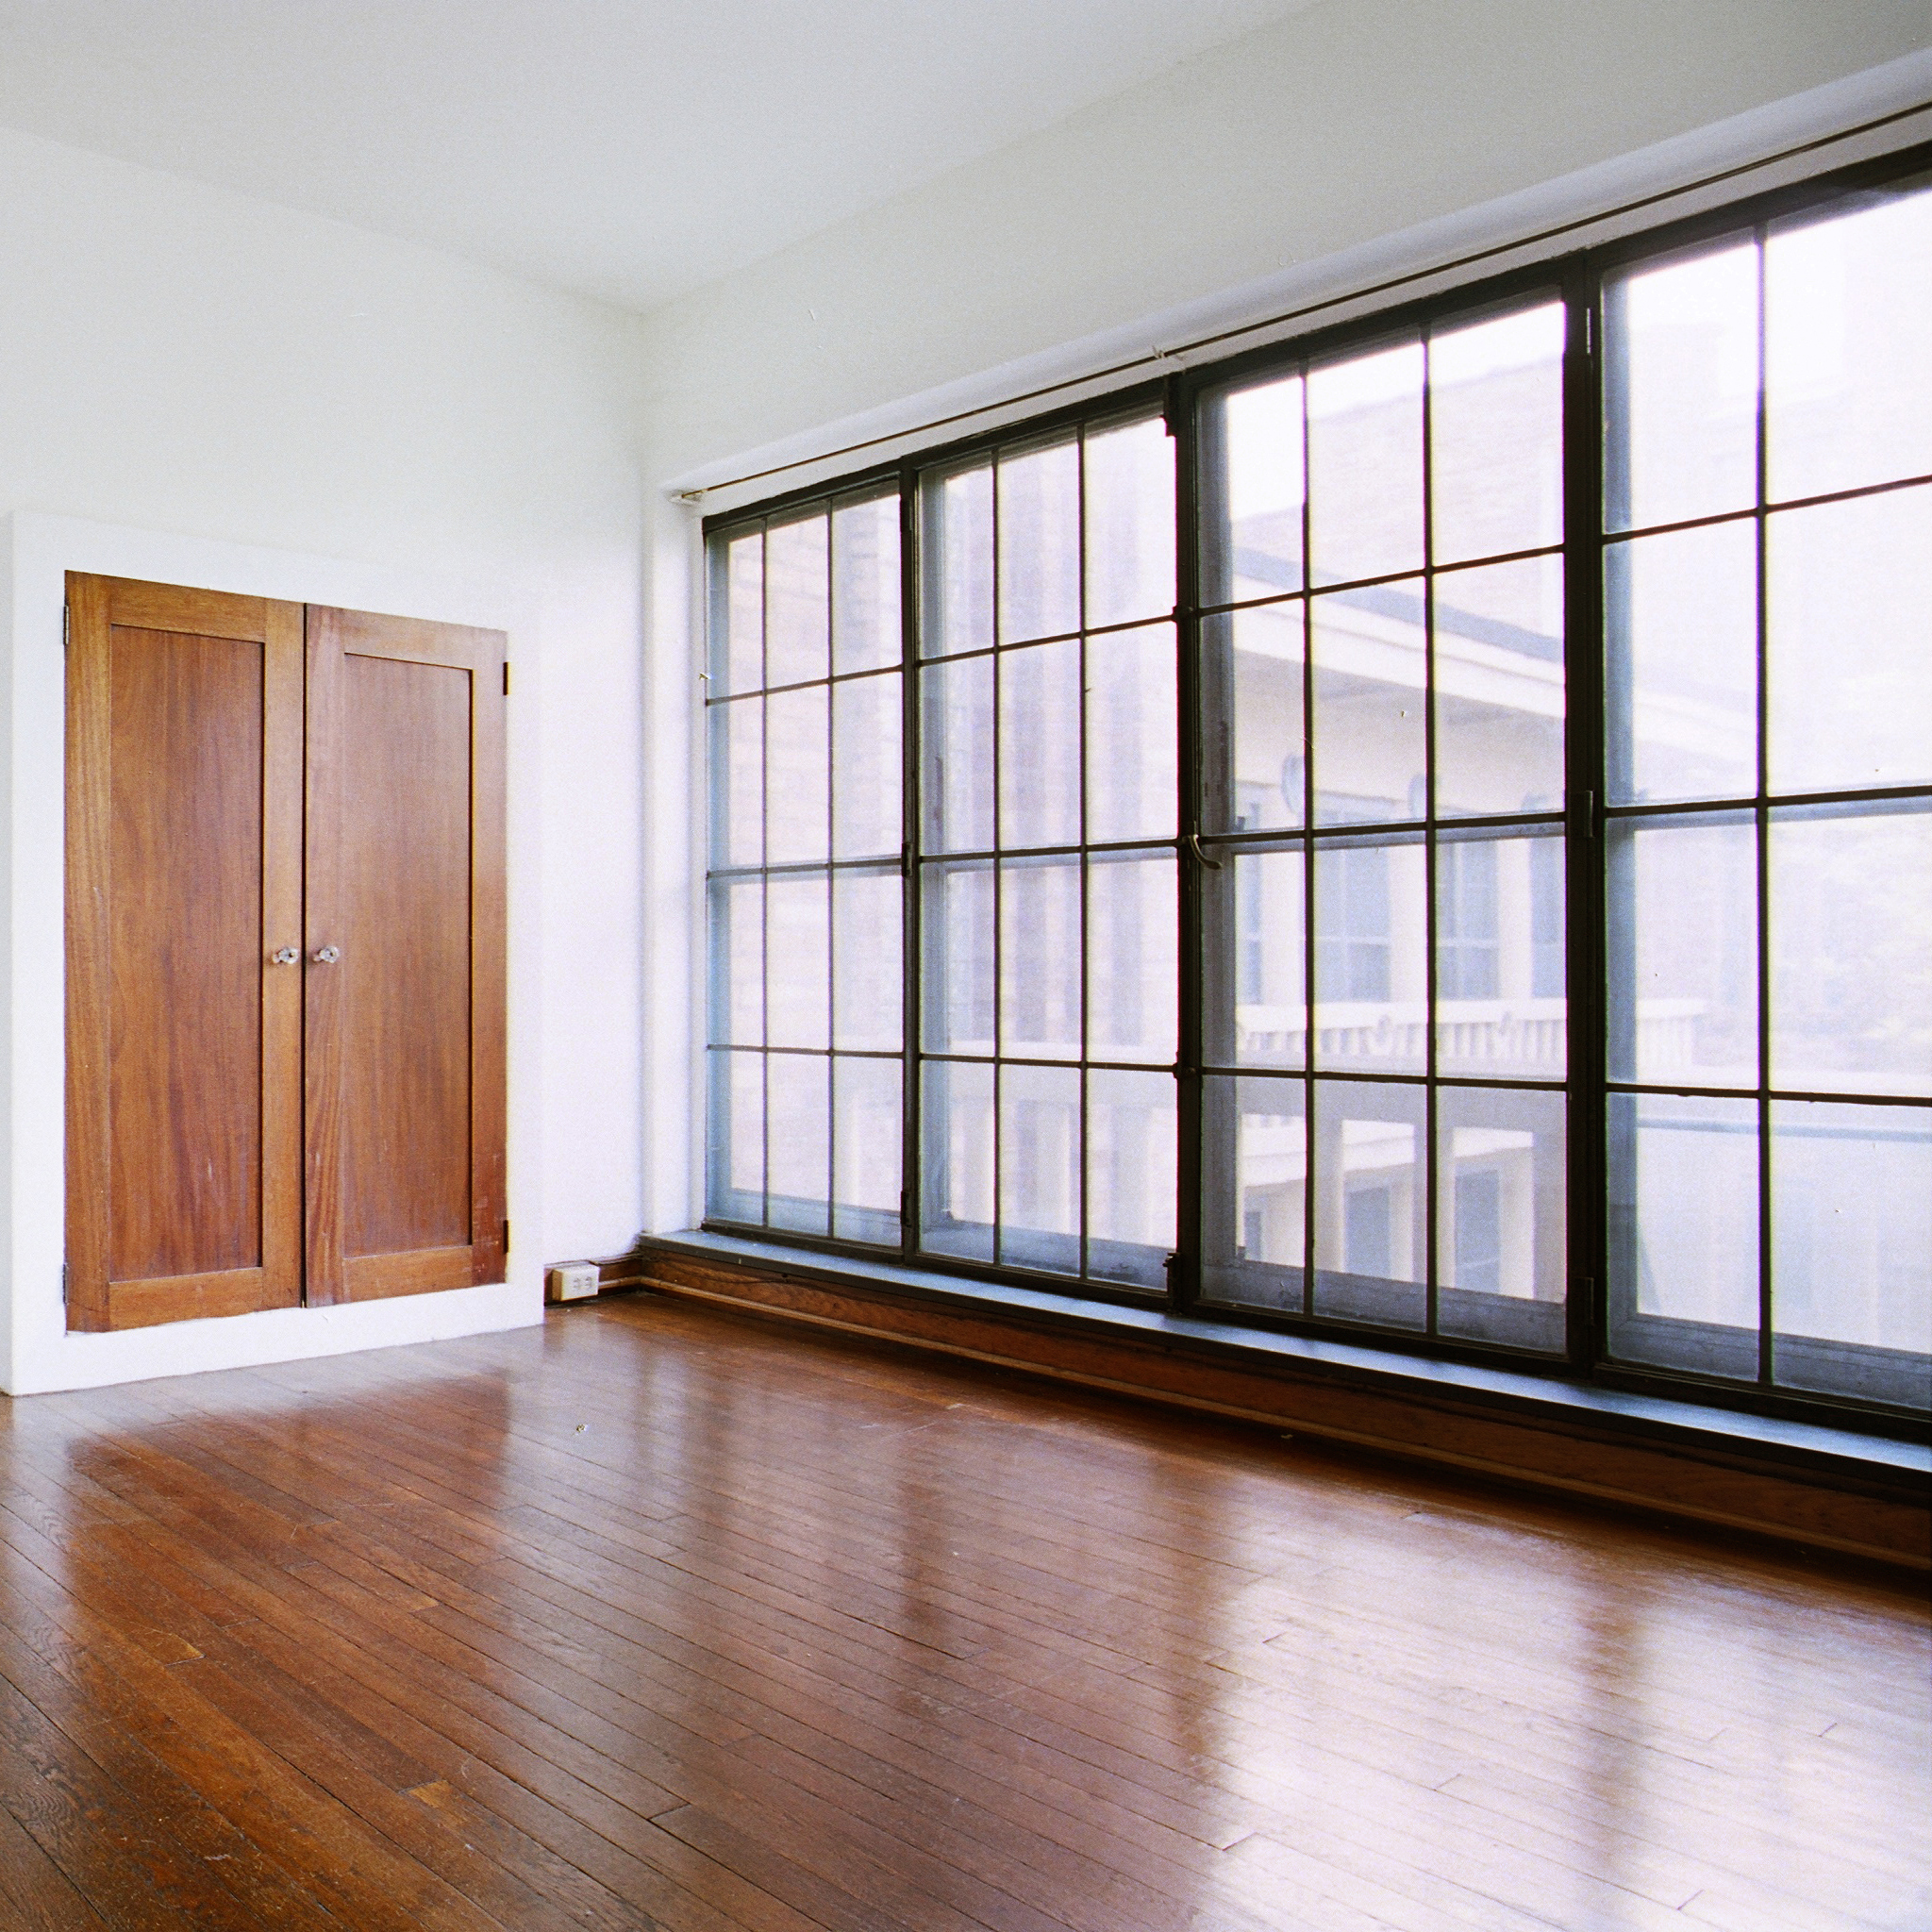 interior of 342 S. Highland Ave, Apt. 15A 6